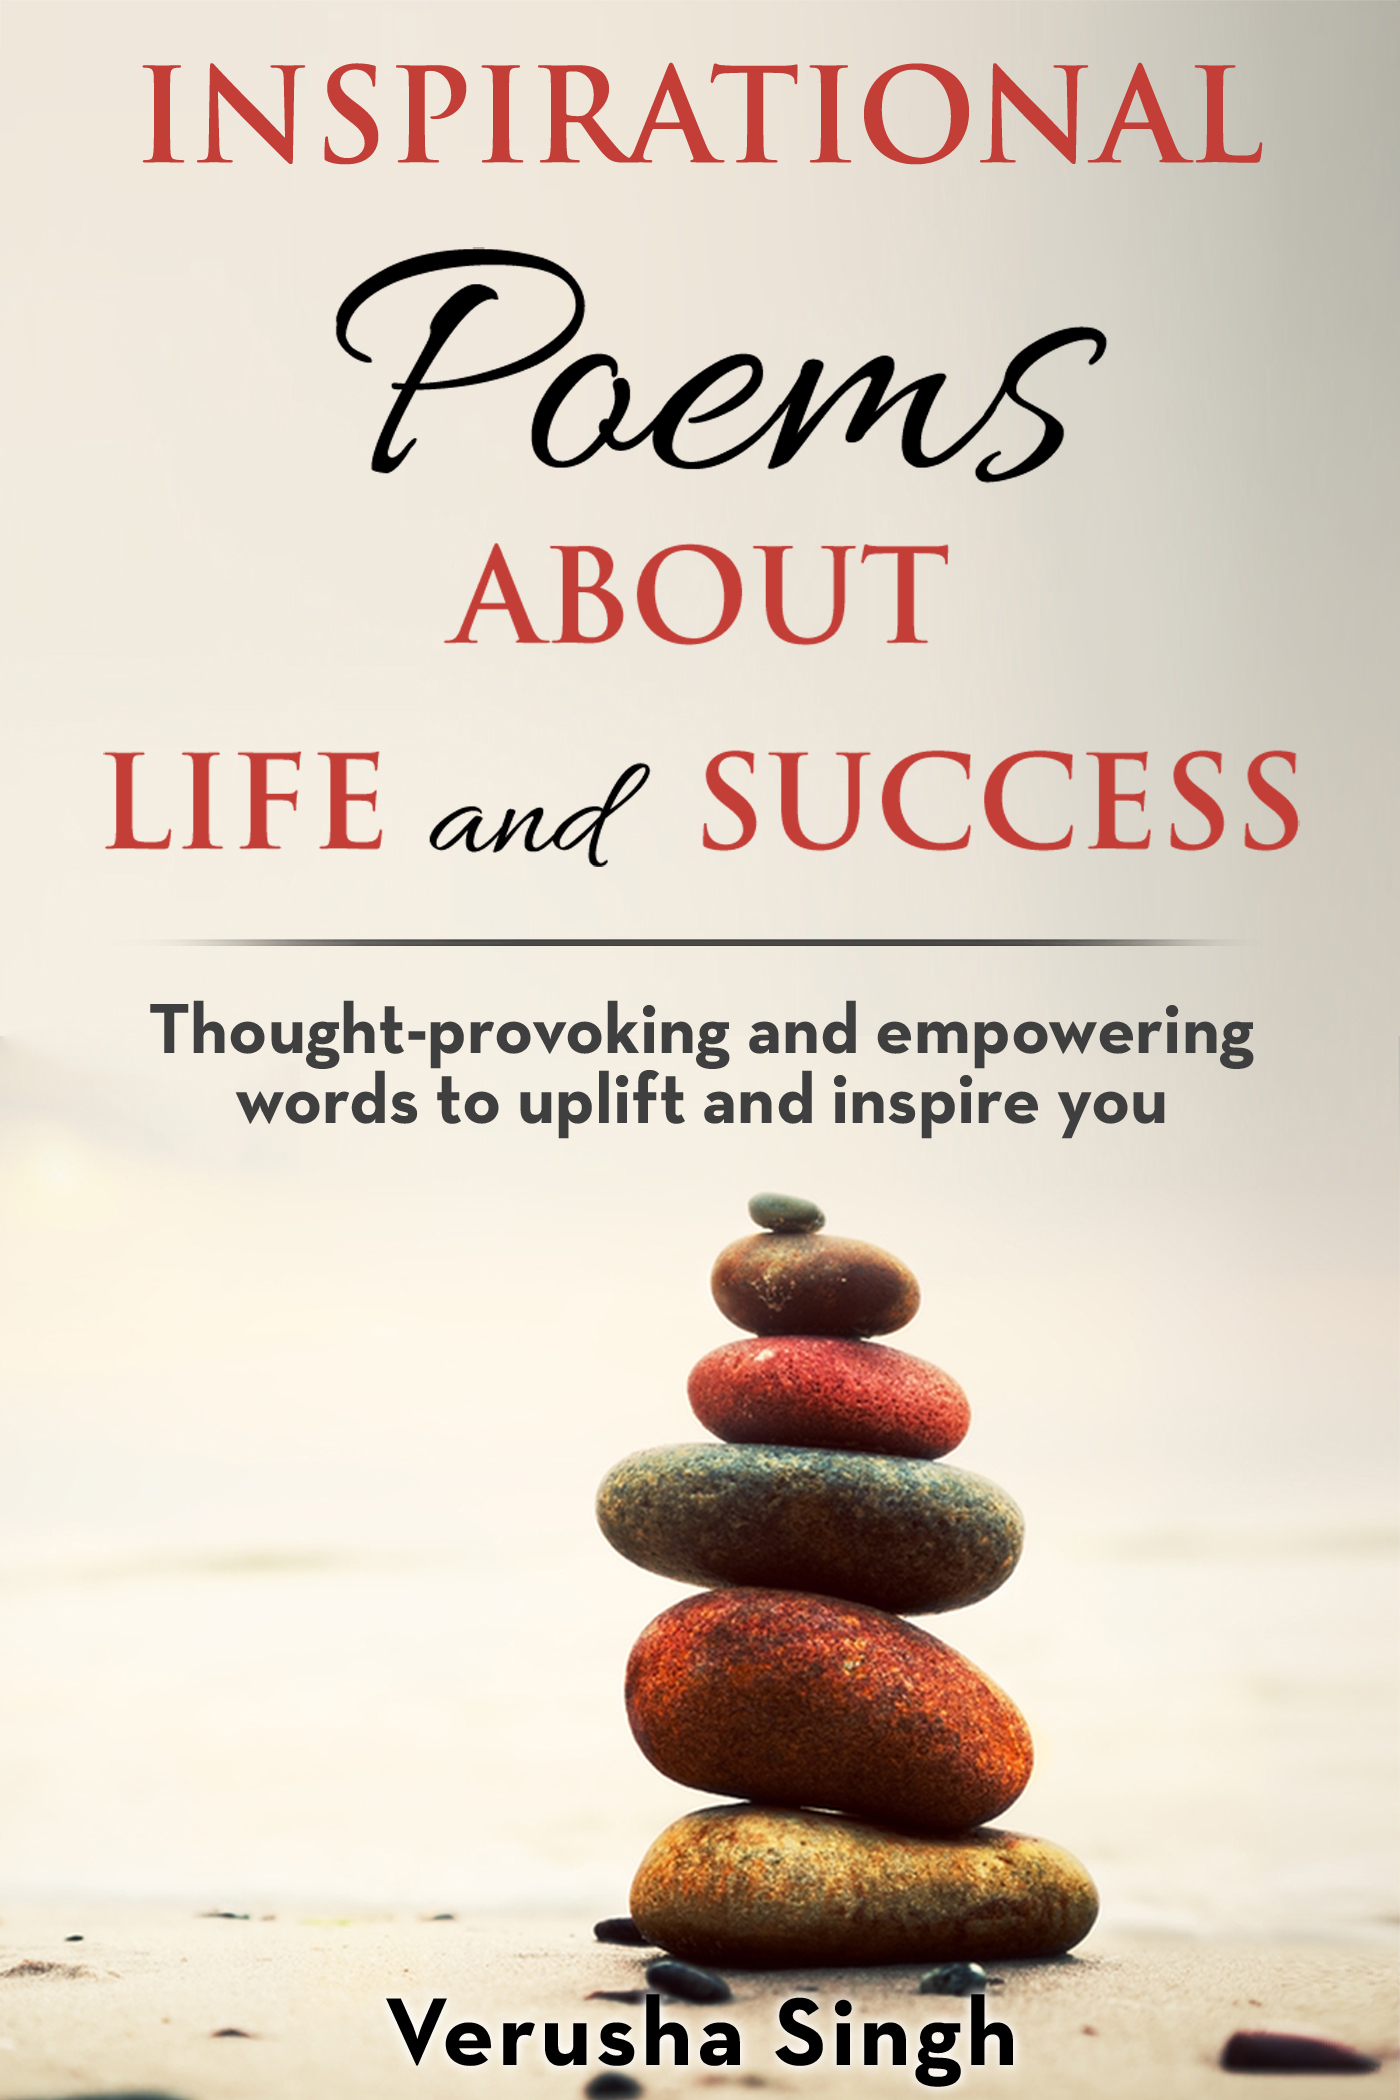 Inspirational Poems About Life and Success: Thought-provoking and empowering words to uplift and inspire you  by  Verusha Singh